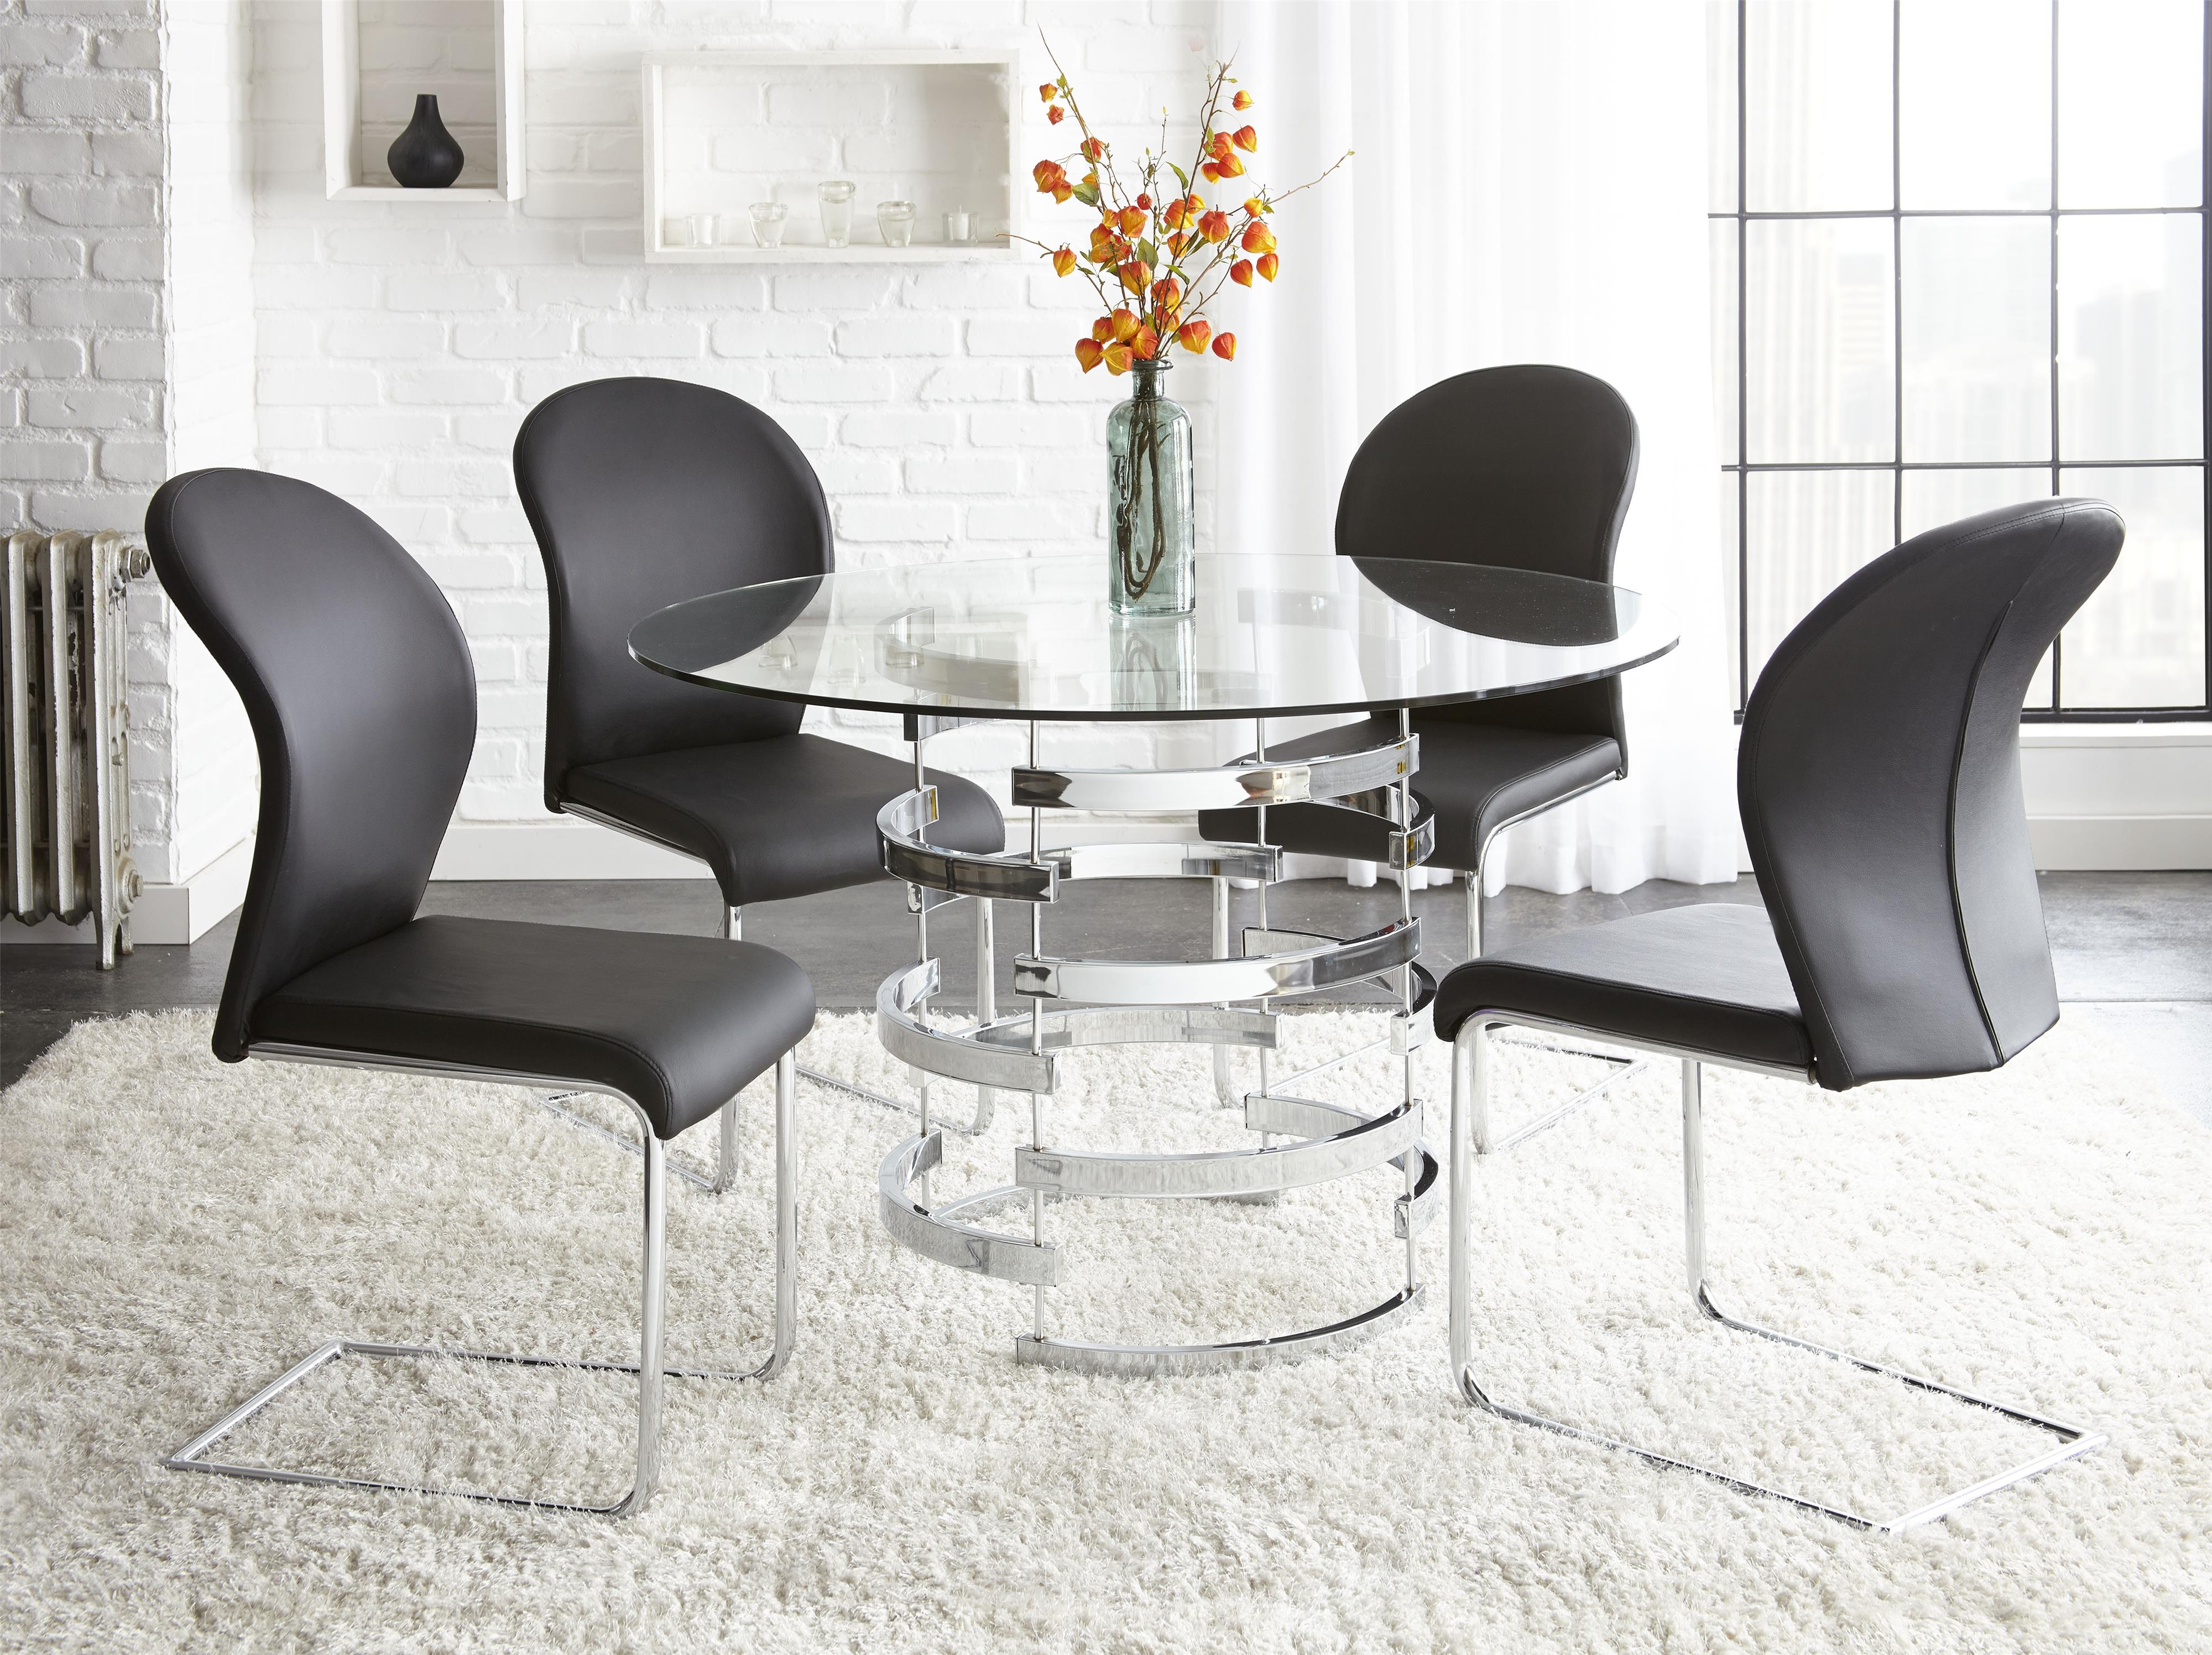 Glass Dining Table And Chairs Tayside 5 Piece Round Glass Table Set With Chrome Pedestal By Steve Silver At Wayside Furniture